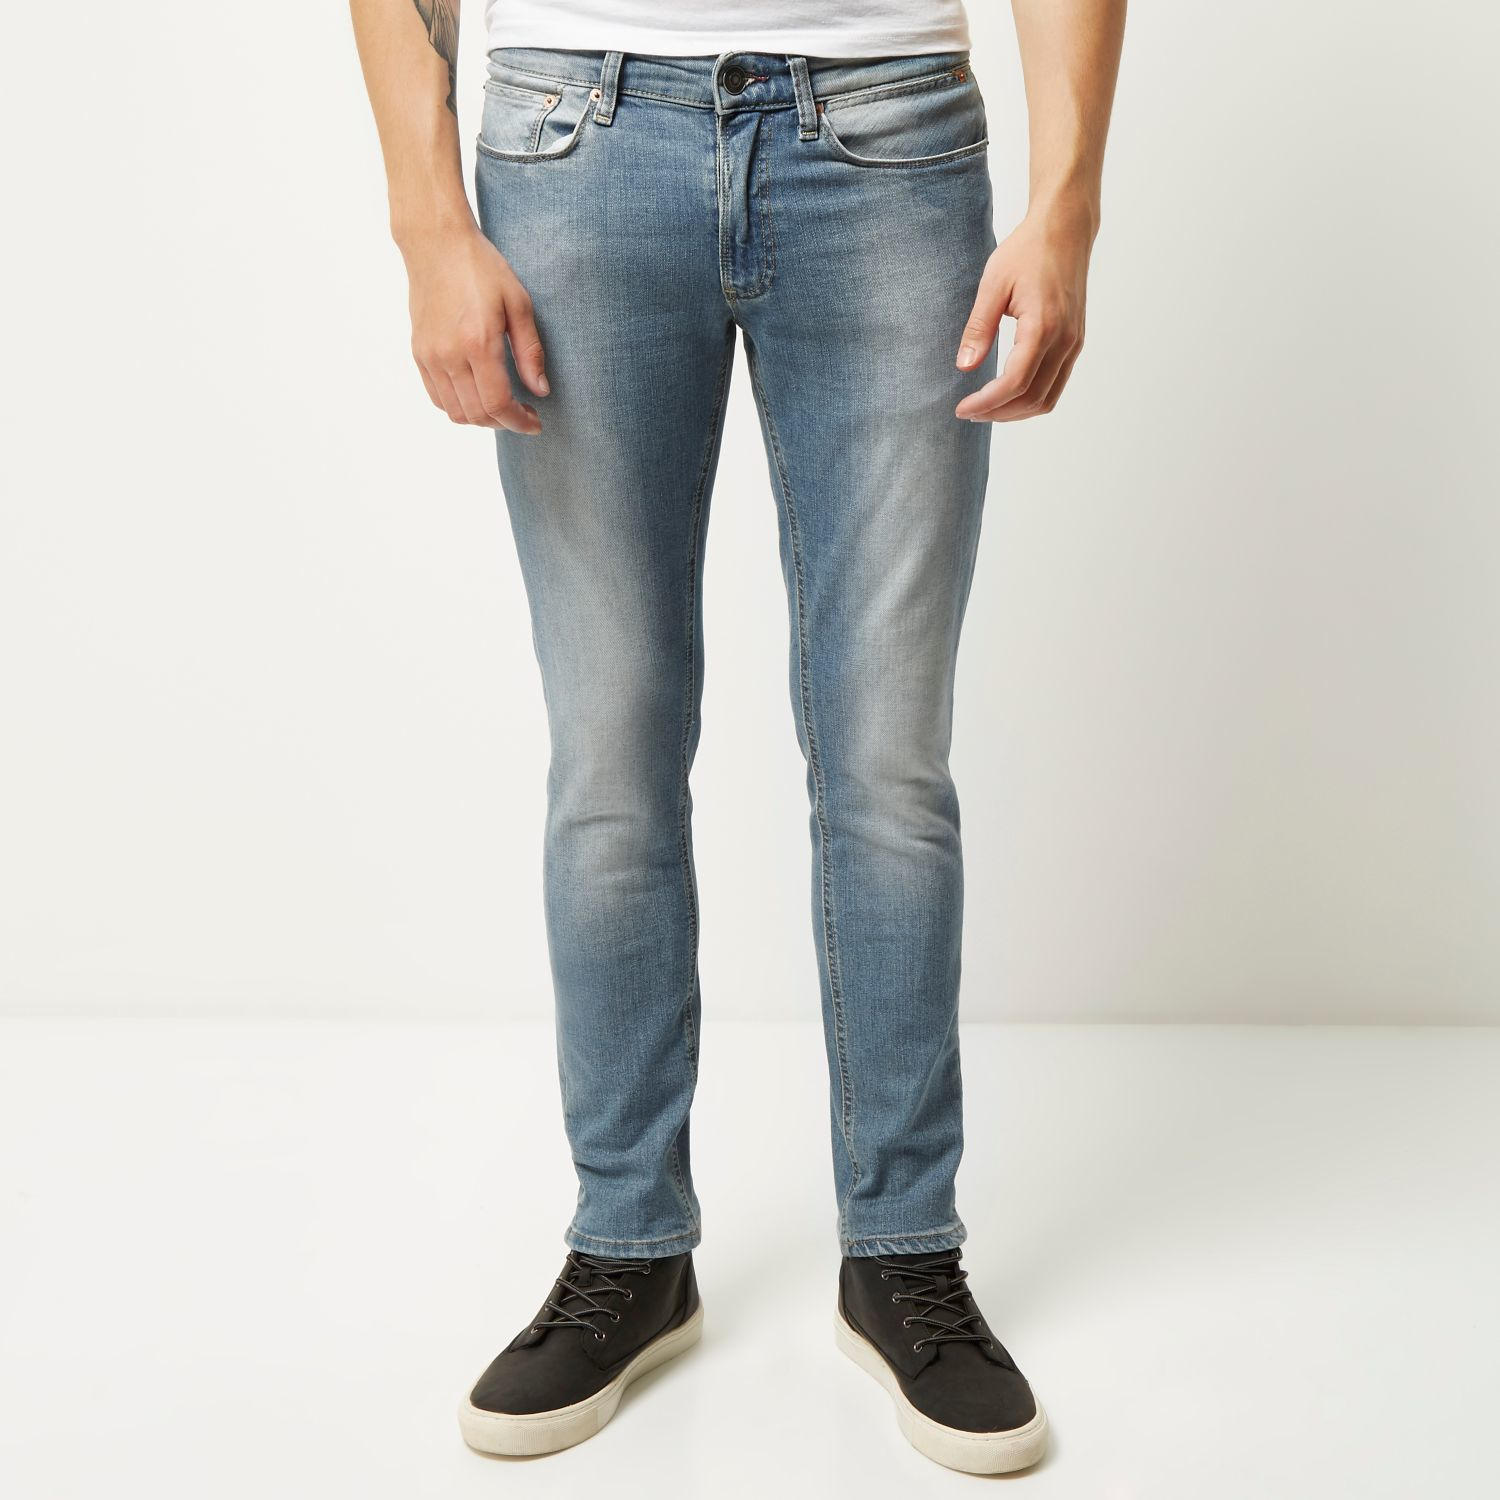 Shop Offer Cheap Online Mens Light Blue washed Sid skinny jeans River Island Cheap Sale 2018 New Sale Exclusive Very Cheap Sale Online c9v0Jb0W9